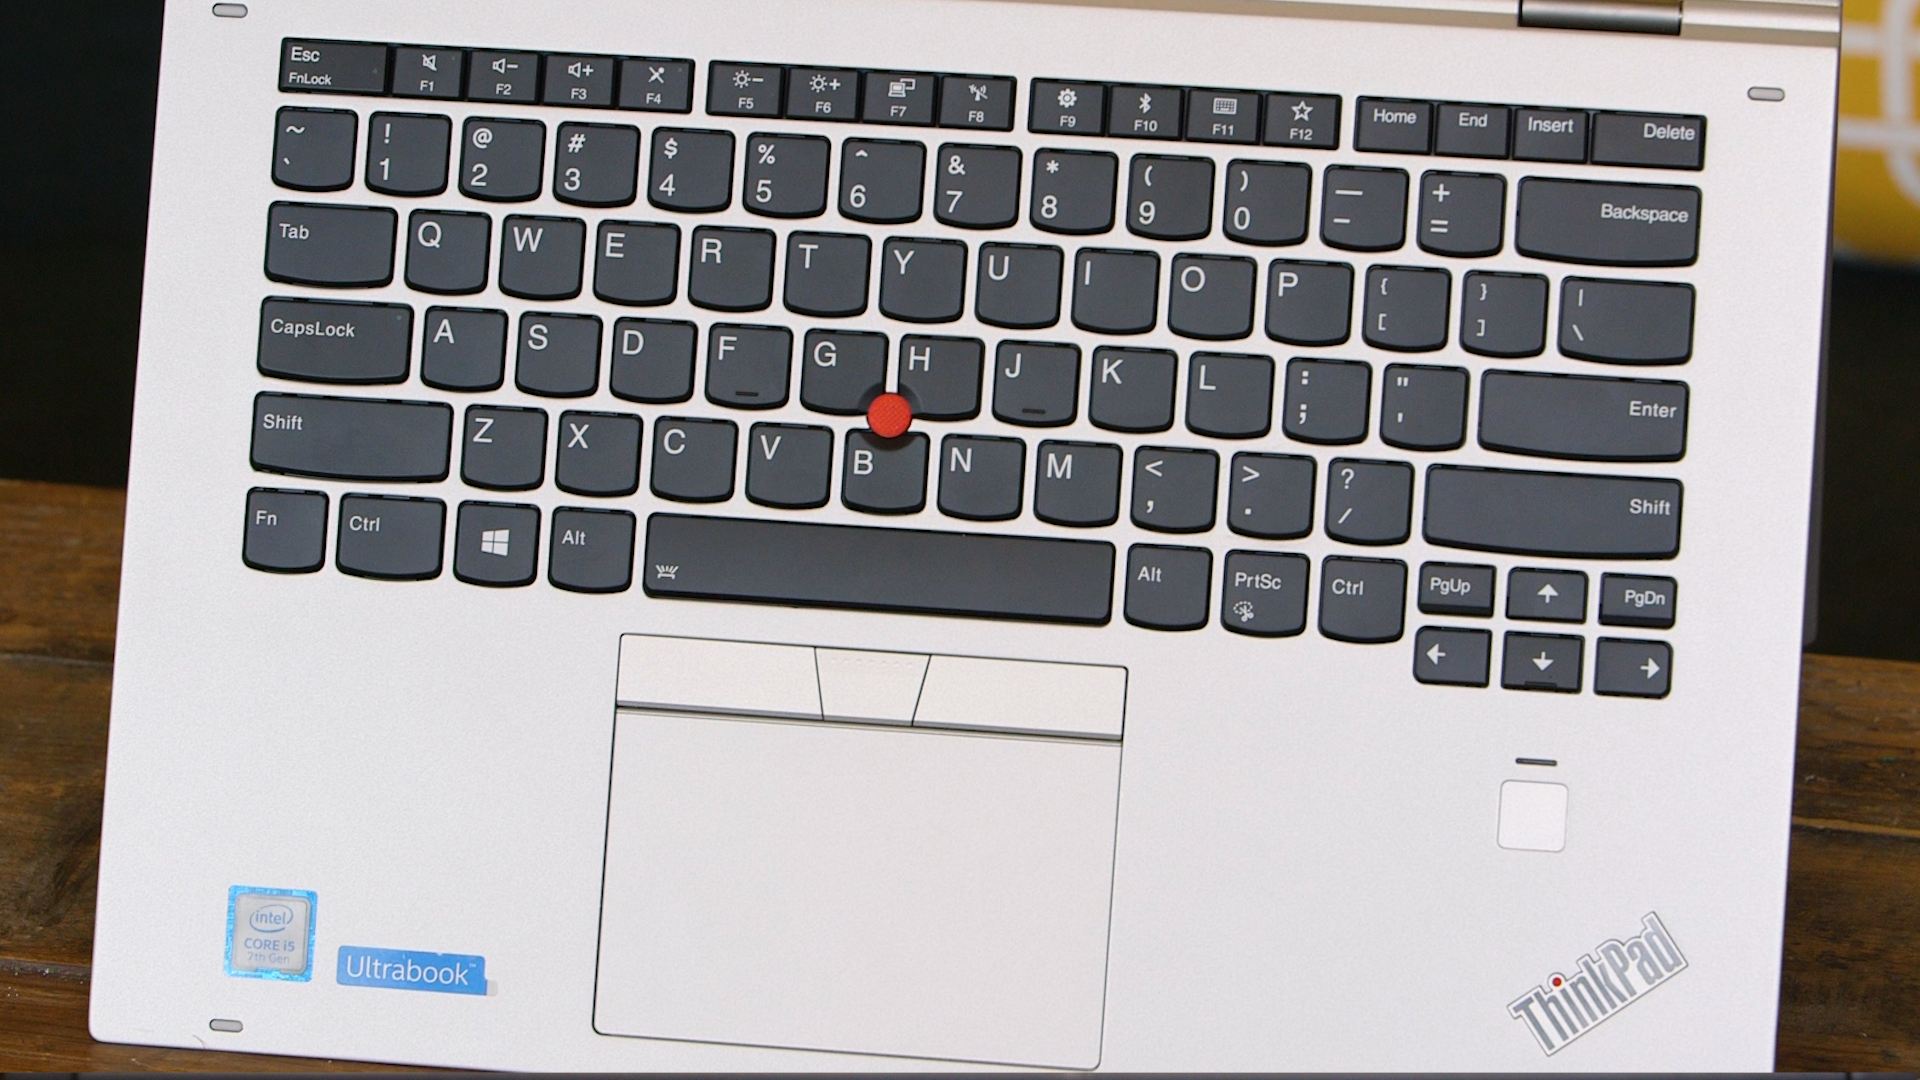 TrackPoint, touchpad, and a fingerprint reader and a good if quirky keyboard layout.